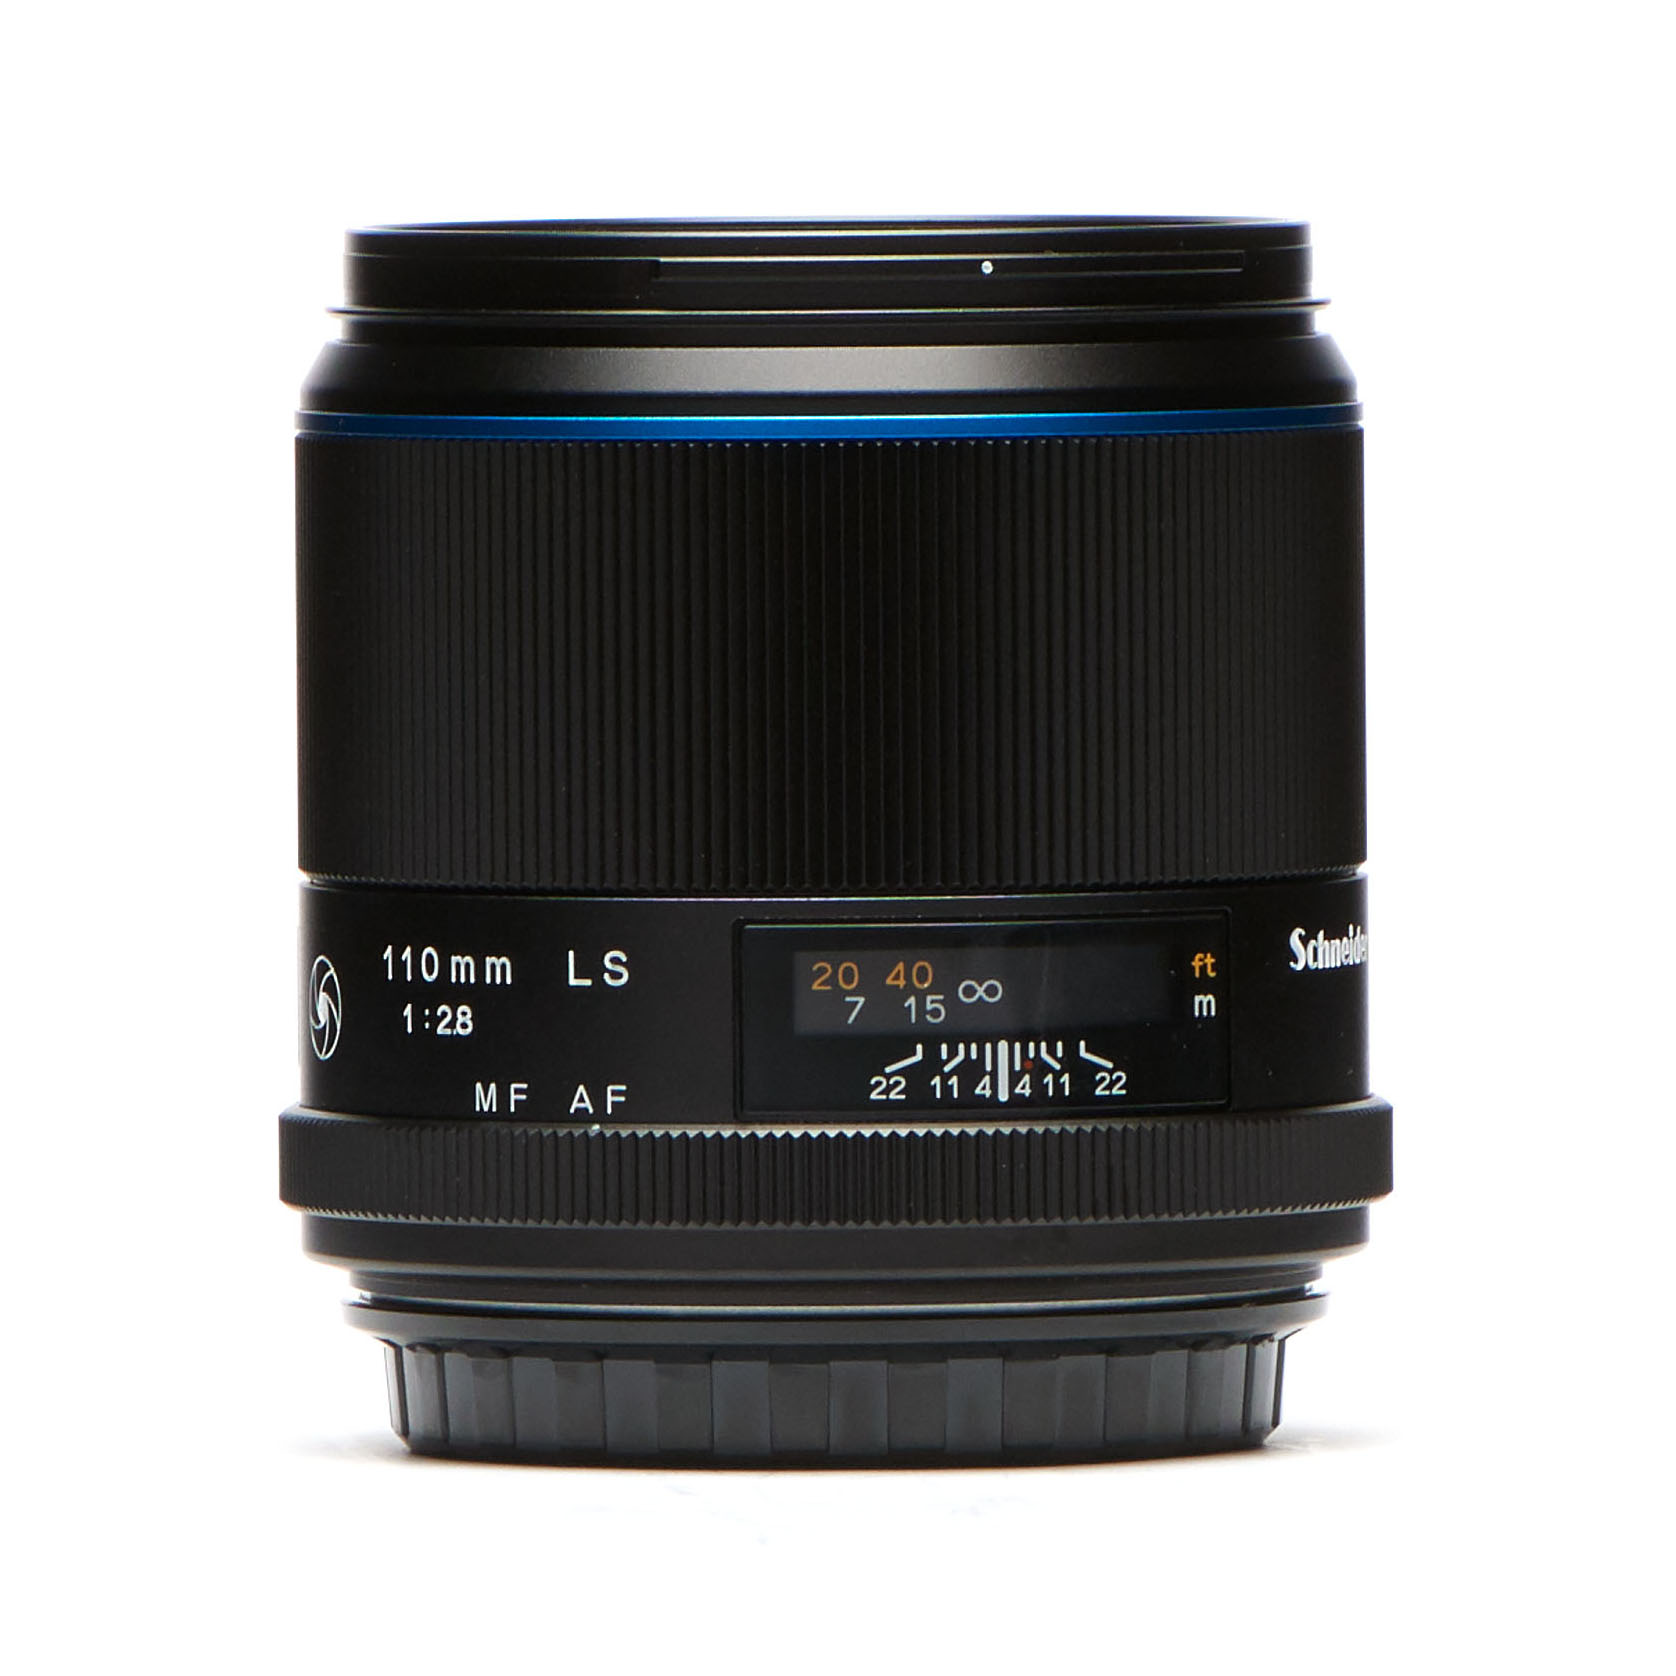 Phase One 110mm f/2.8 LS AF Schneider Kreuznach [Blue Ring]